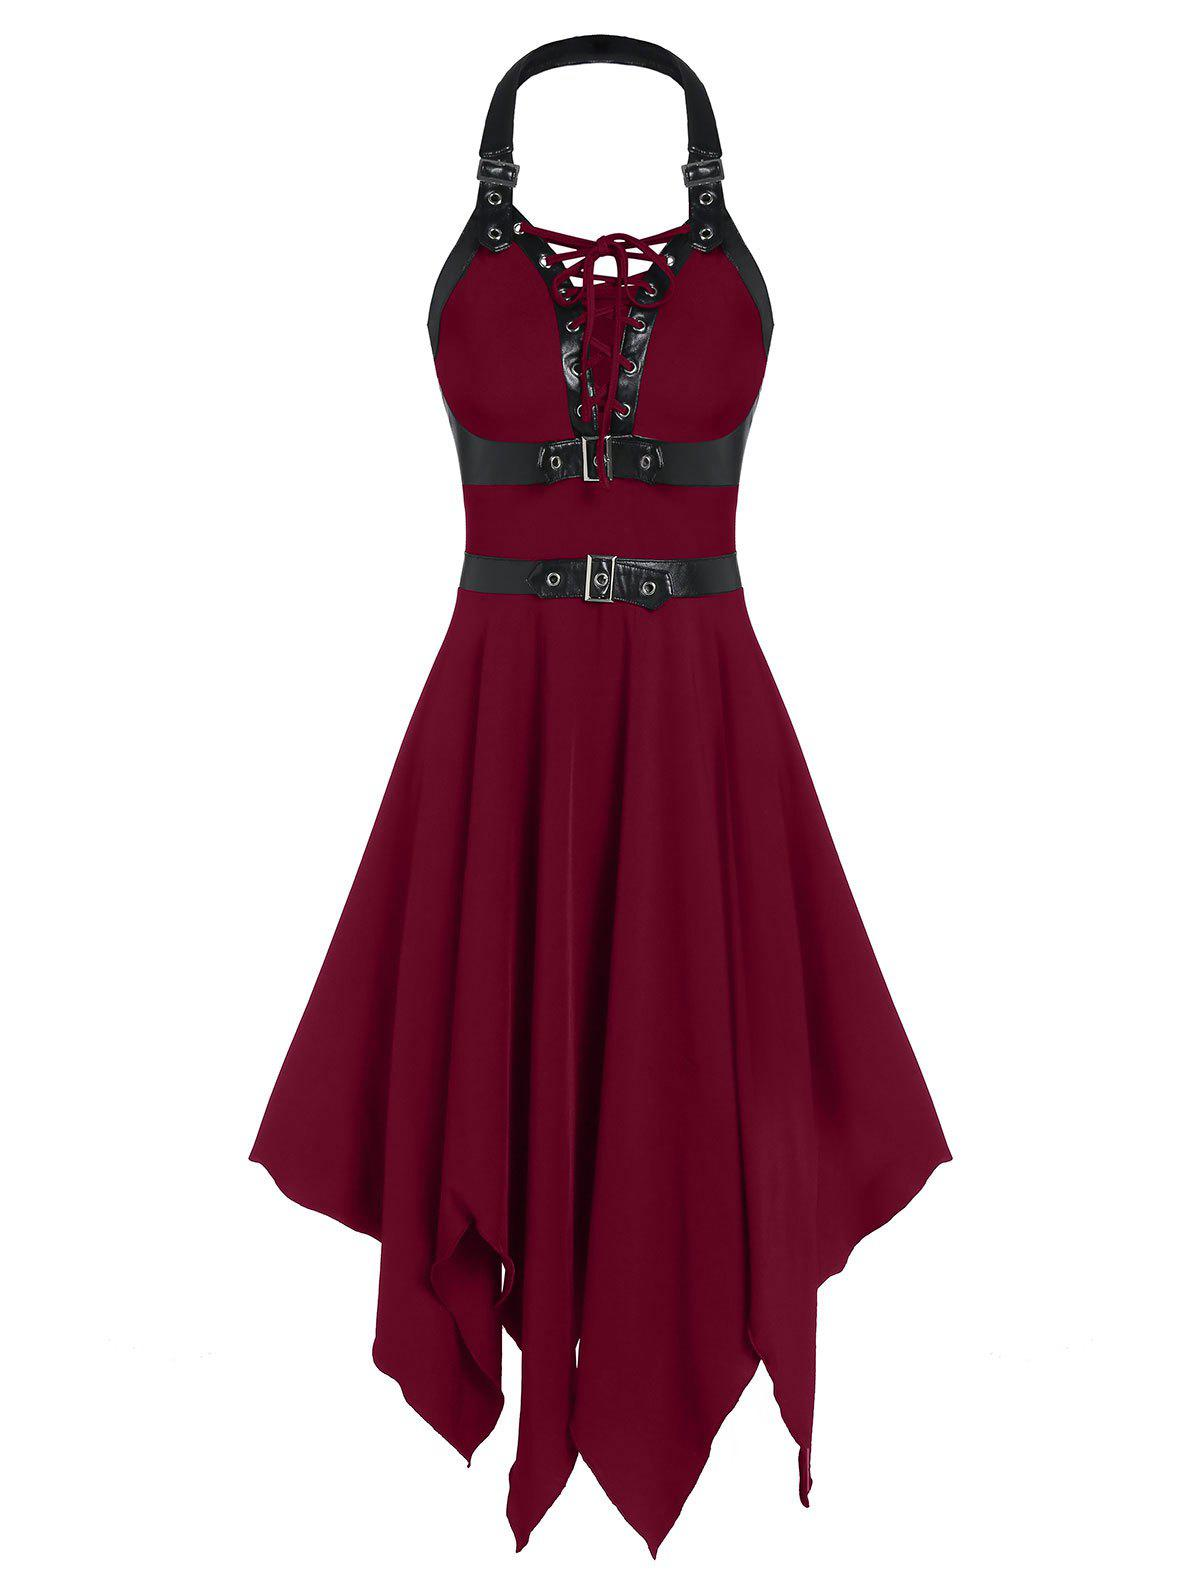 Chic Buckle Strap Cut Out Lace-up Handkerchief Gothic Dress